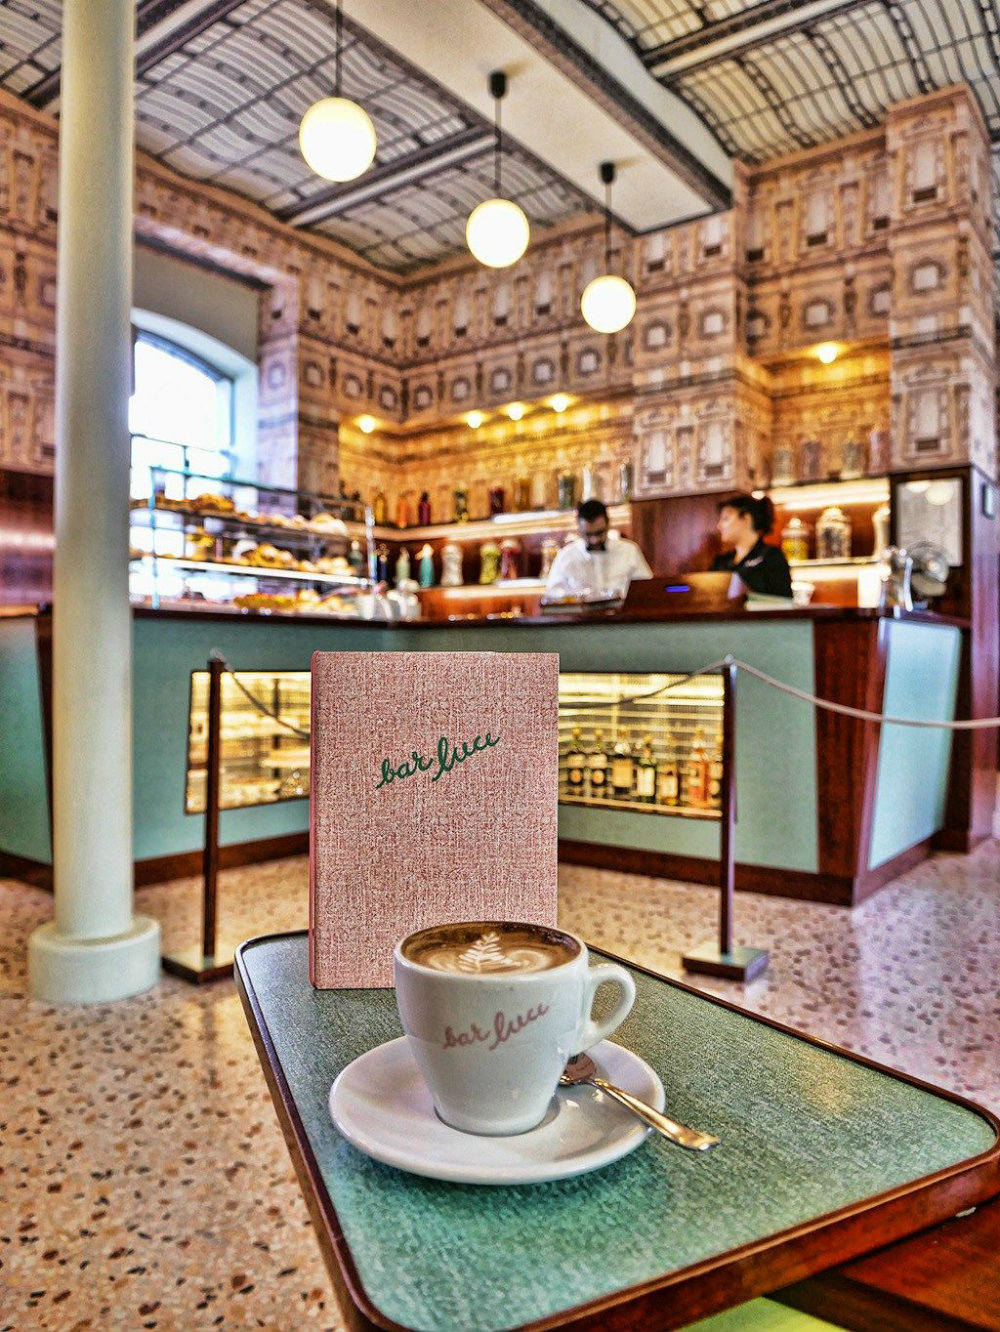 7 Most Instagrammable Places in Milan 08 most instagrammable places in milan 7 Most Instagrammable Places In Milan 7mostinstagrammableplacesinmilan08